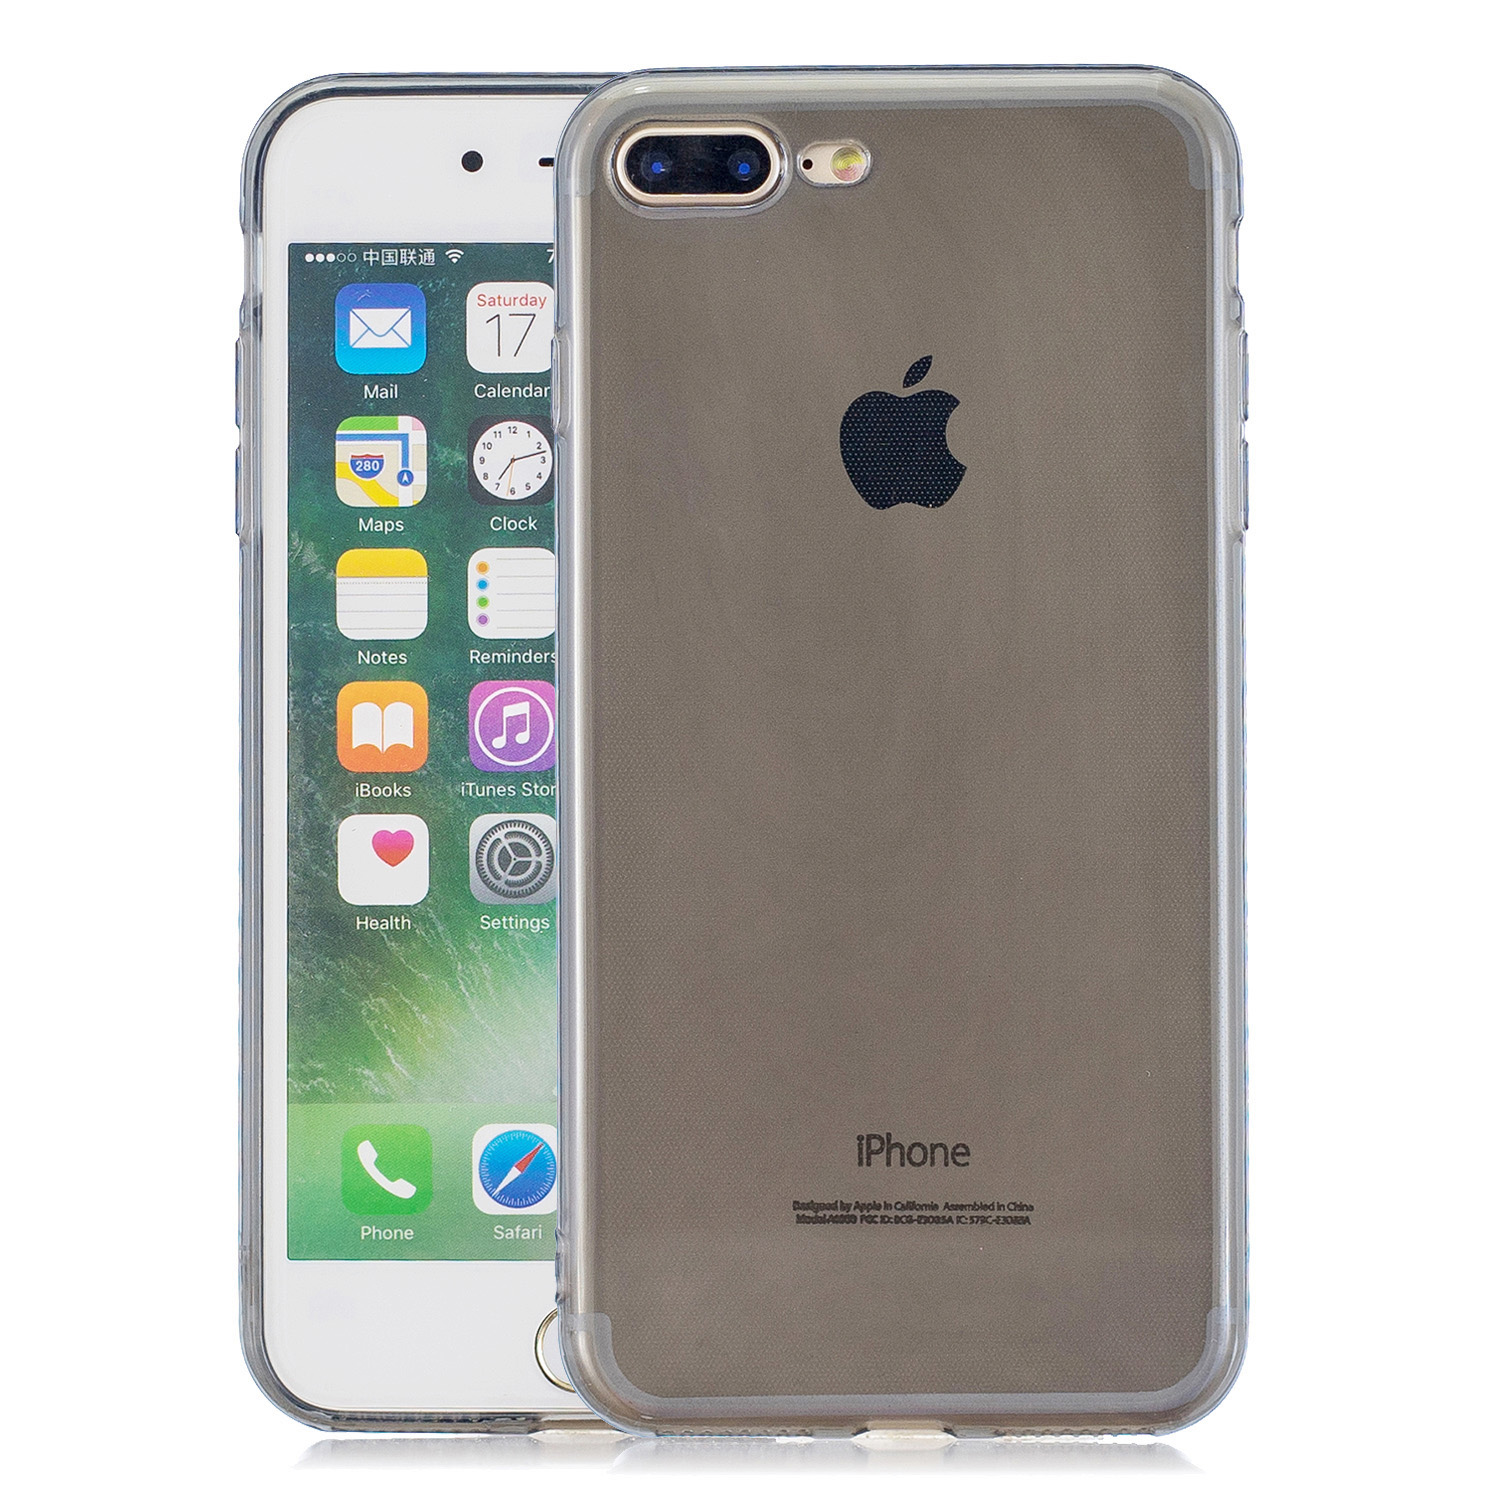 for iPhone 6/6S / 6 Plus/6S Plus / 7/8 / 7 Plus/8 Plus Clear Colorful TPU Back Cover Cellphone Case Shell Black